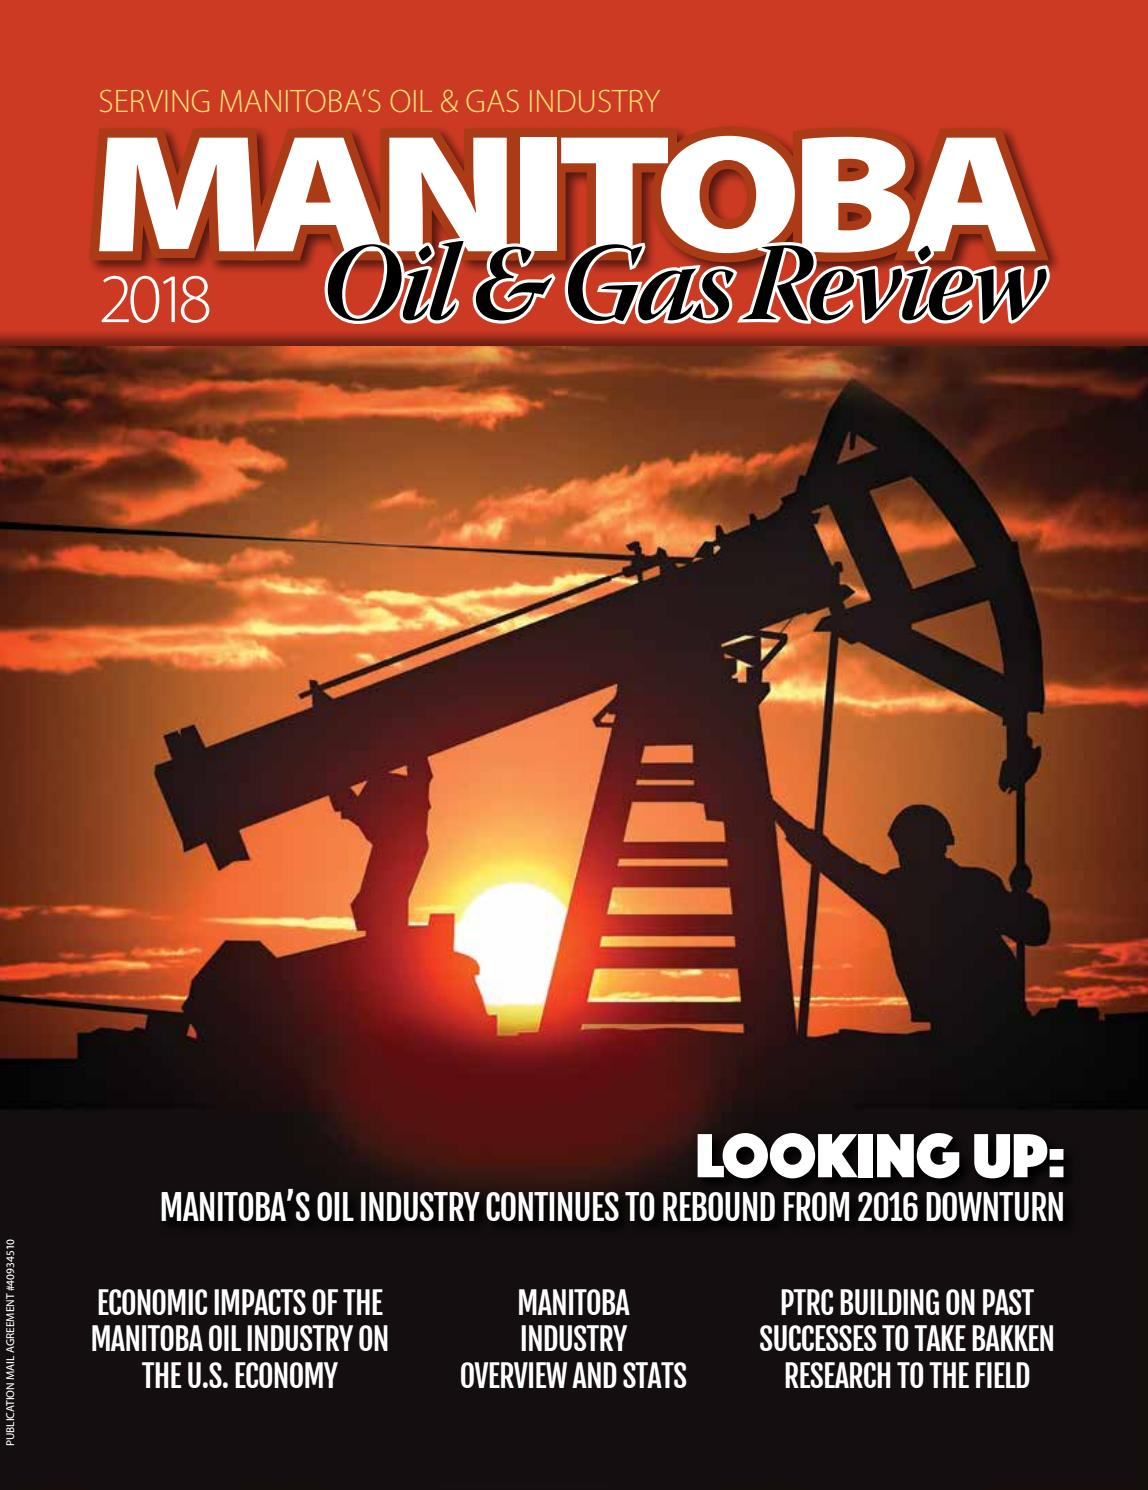 Manitoba Oil & Gas Review 2018 by DEL Communications Inc  - issuu